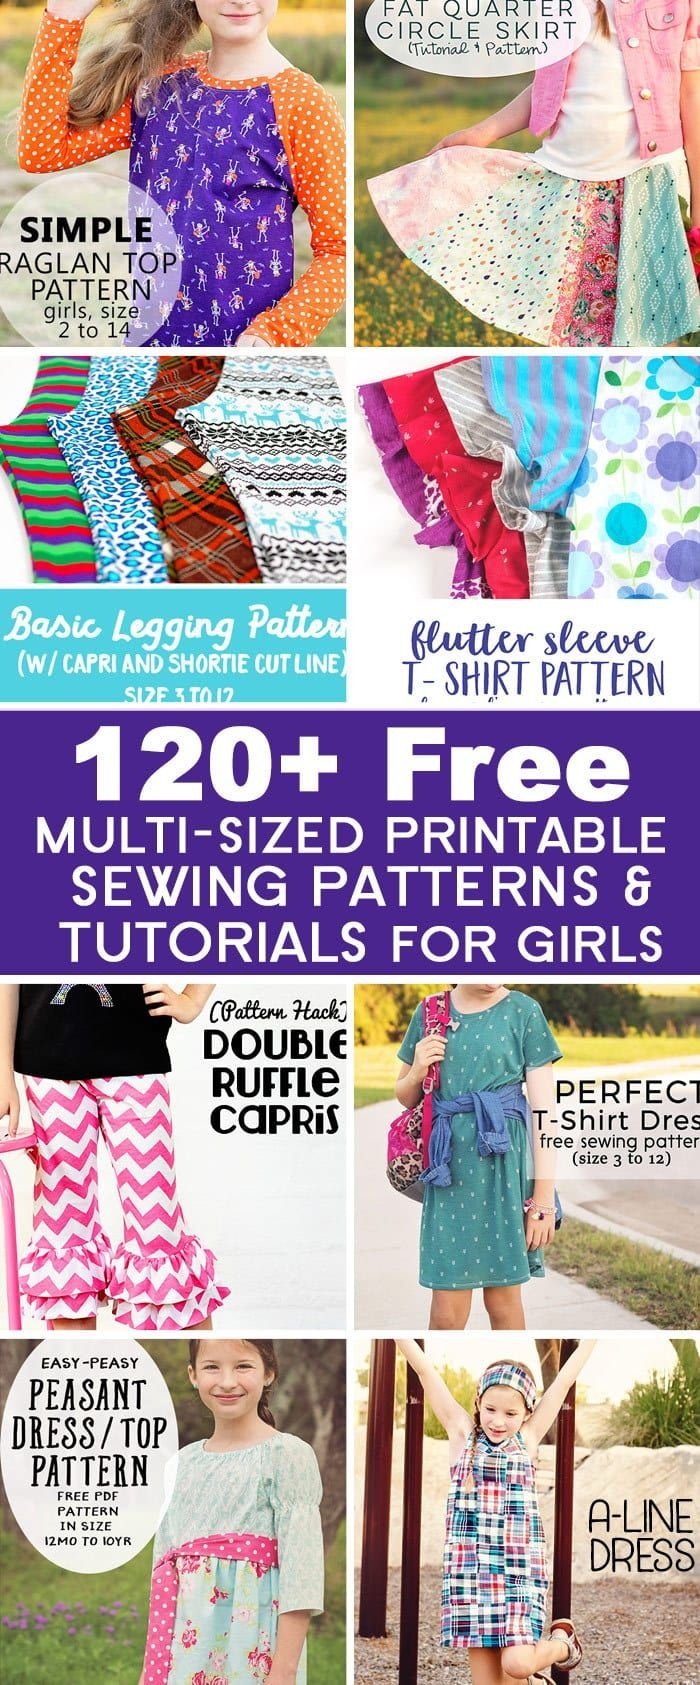 Over 120 Free Printable Sewing Patterns And Tutorials For Girls - Free Printable Sewing Patterns For Kids